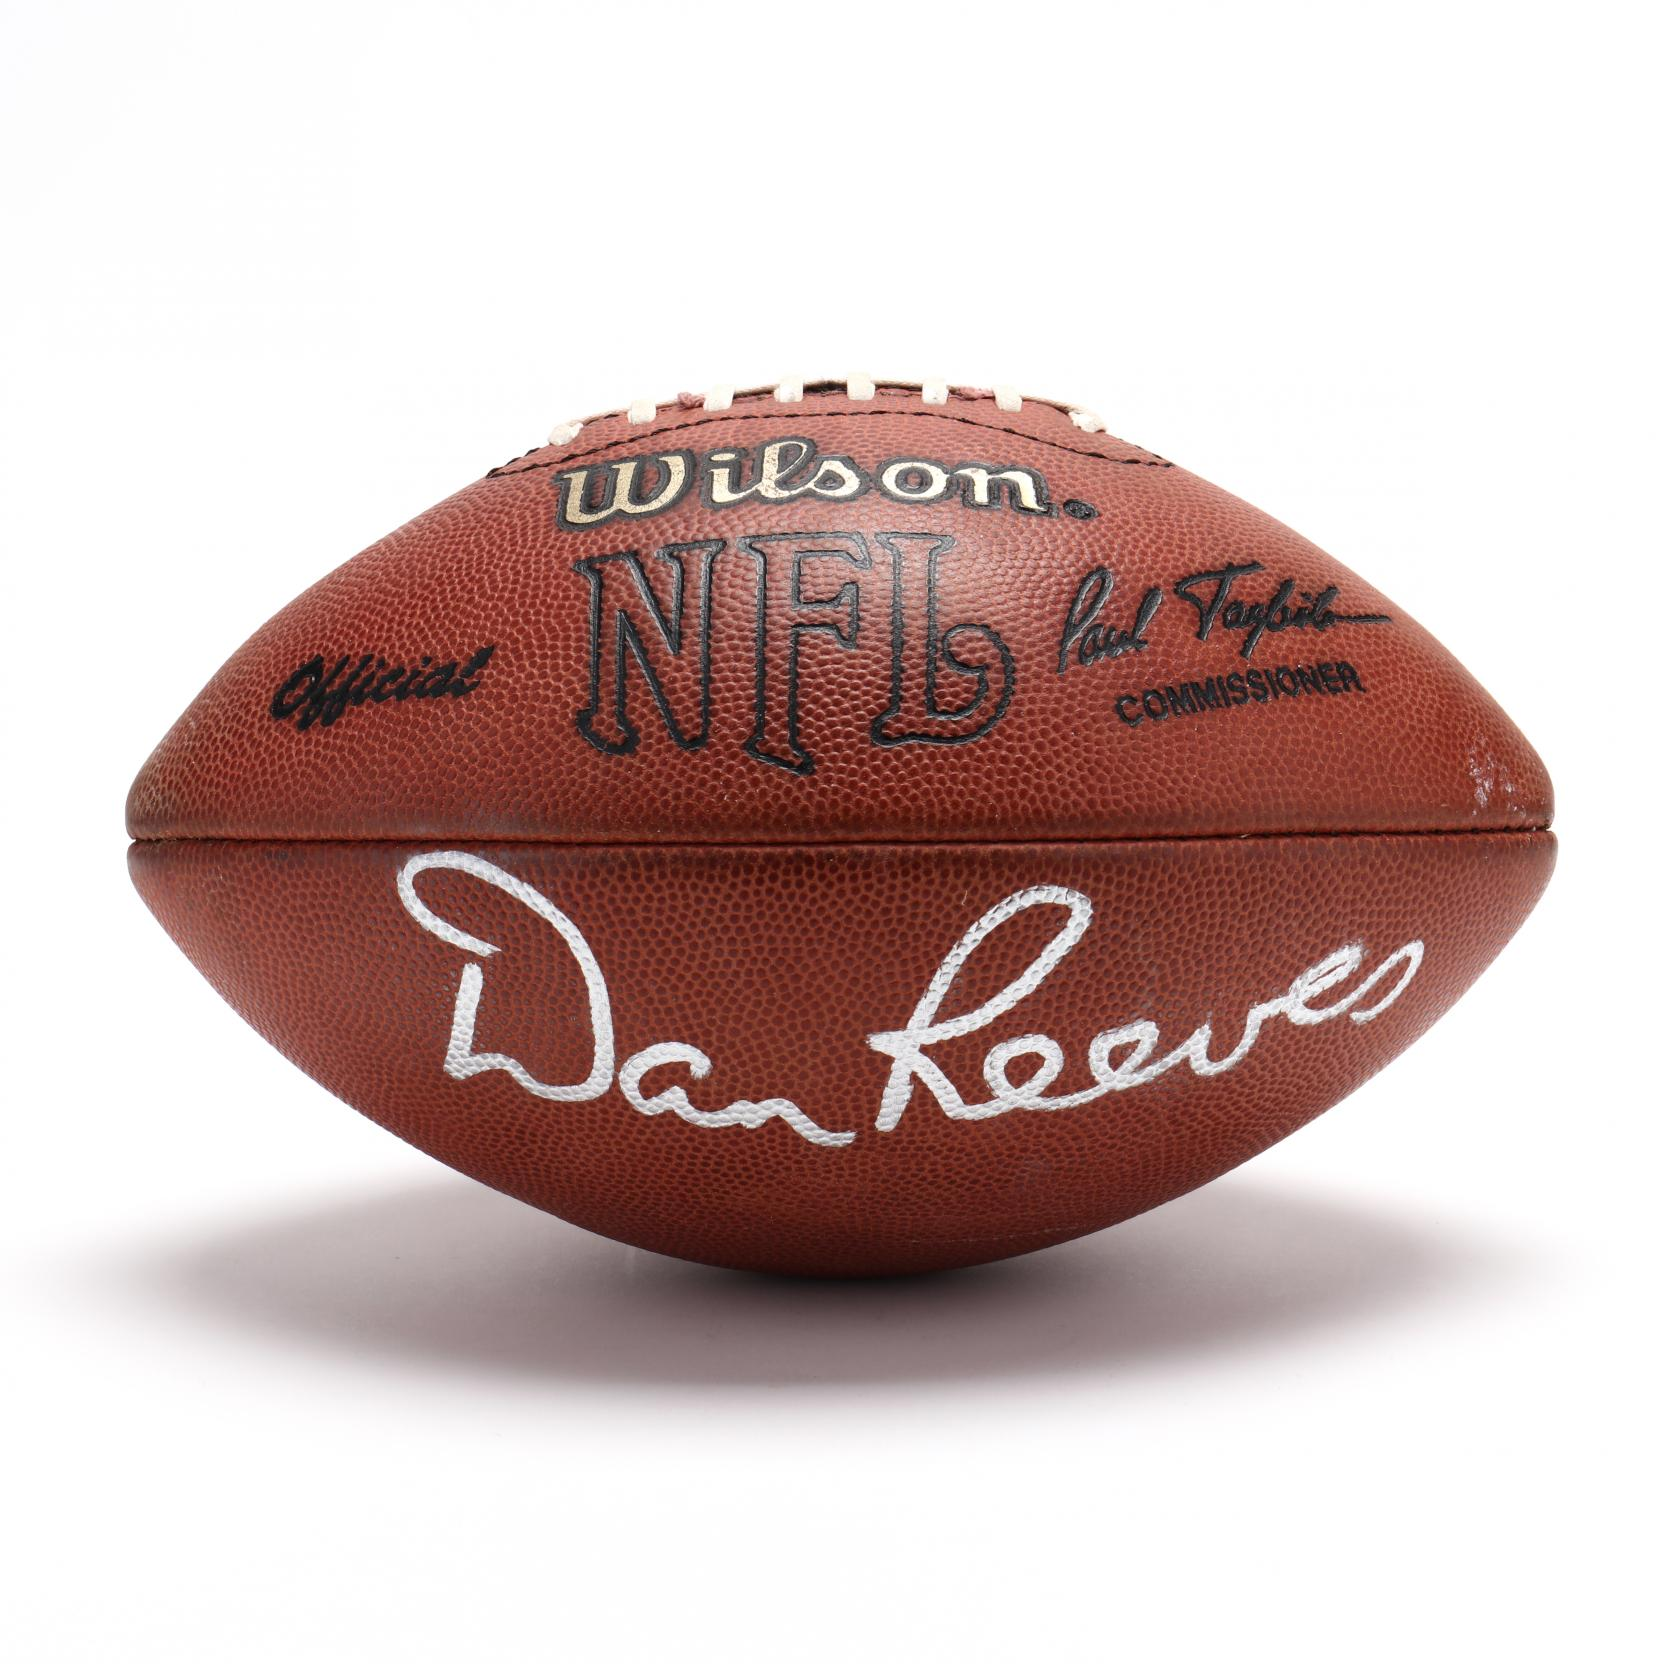 dan-reeves-signed-dallas-cowboys-football